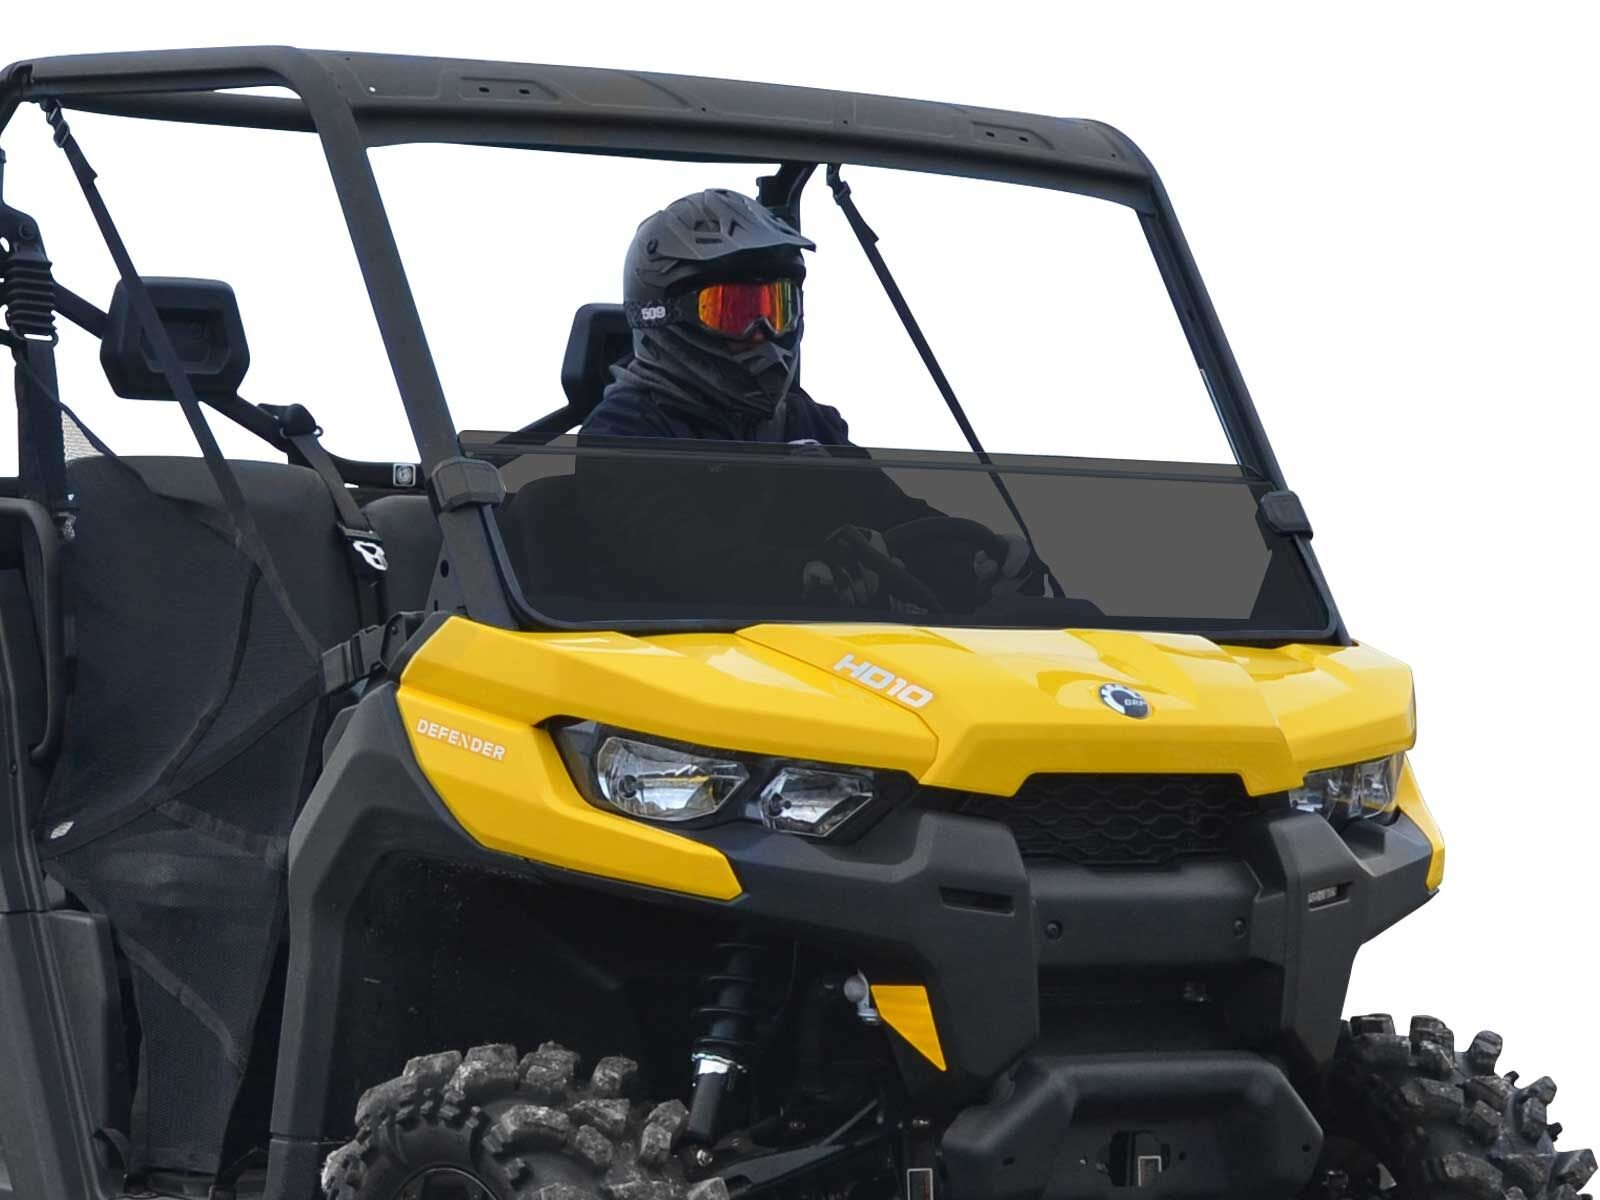 SuperATV Heavy Duty Half Windshield for Can-Am Defender HD 5/8 / 10 / MAX (2016+) - Dark Tinted Non Scratch Resistant Polycarbonate - Easy to Install!